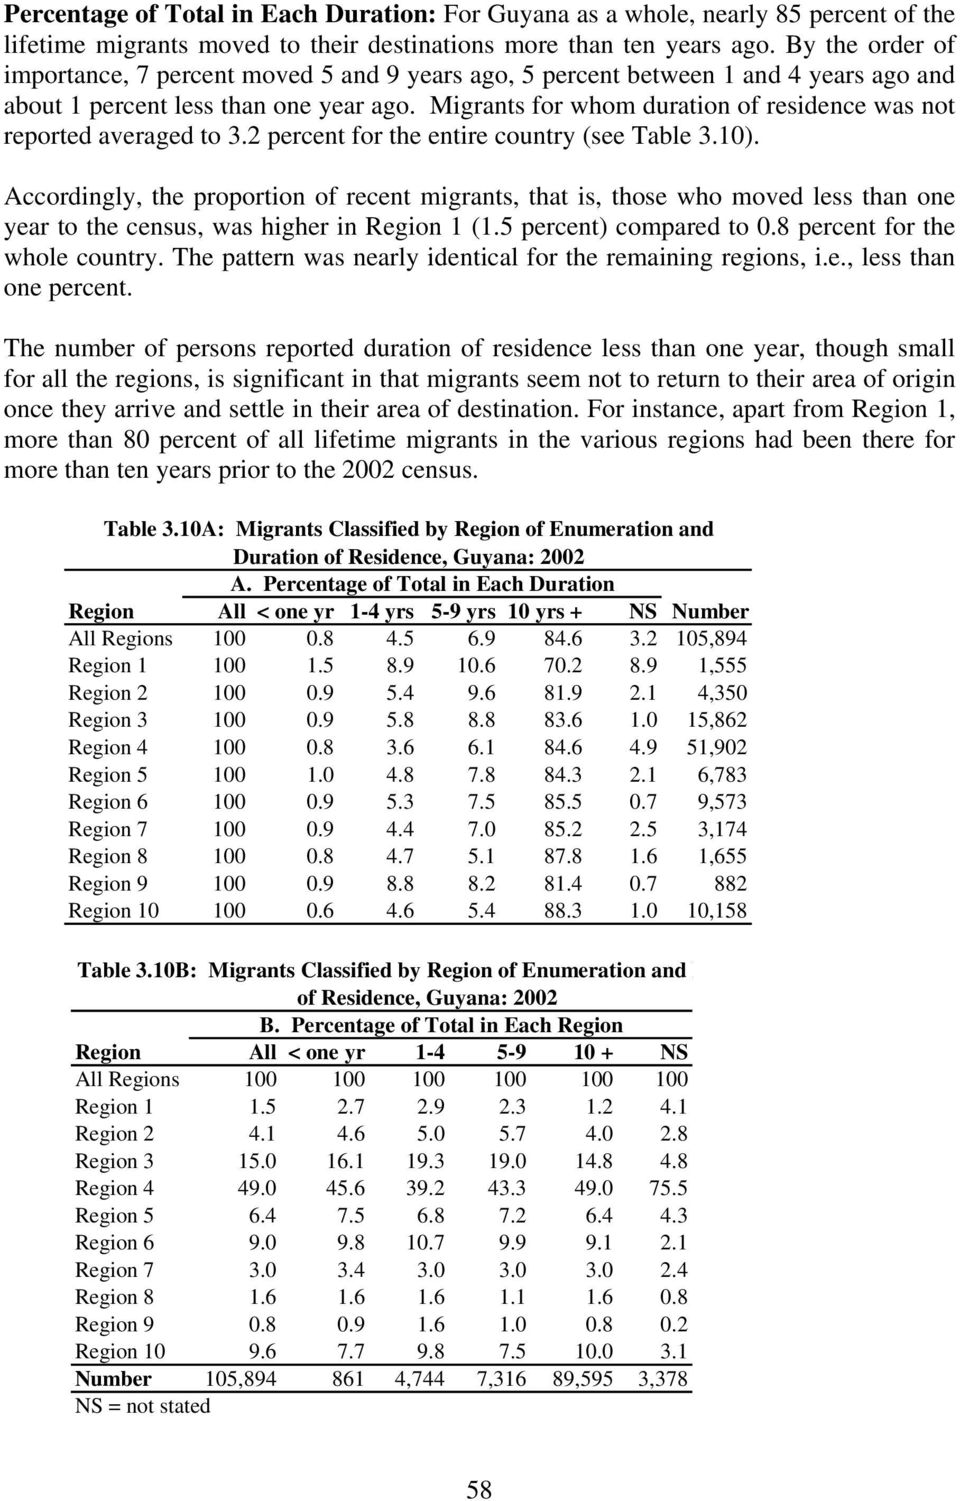 Migrants for whom duration of residence was not reported averaged to 3.2 percent for the entire country (see Table 3.10).